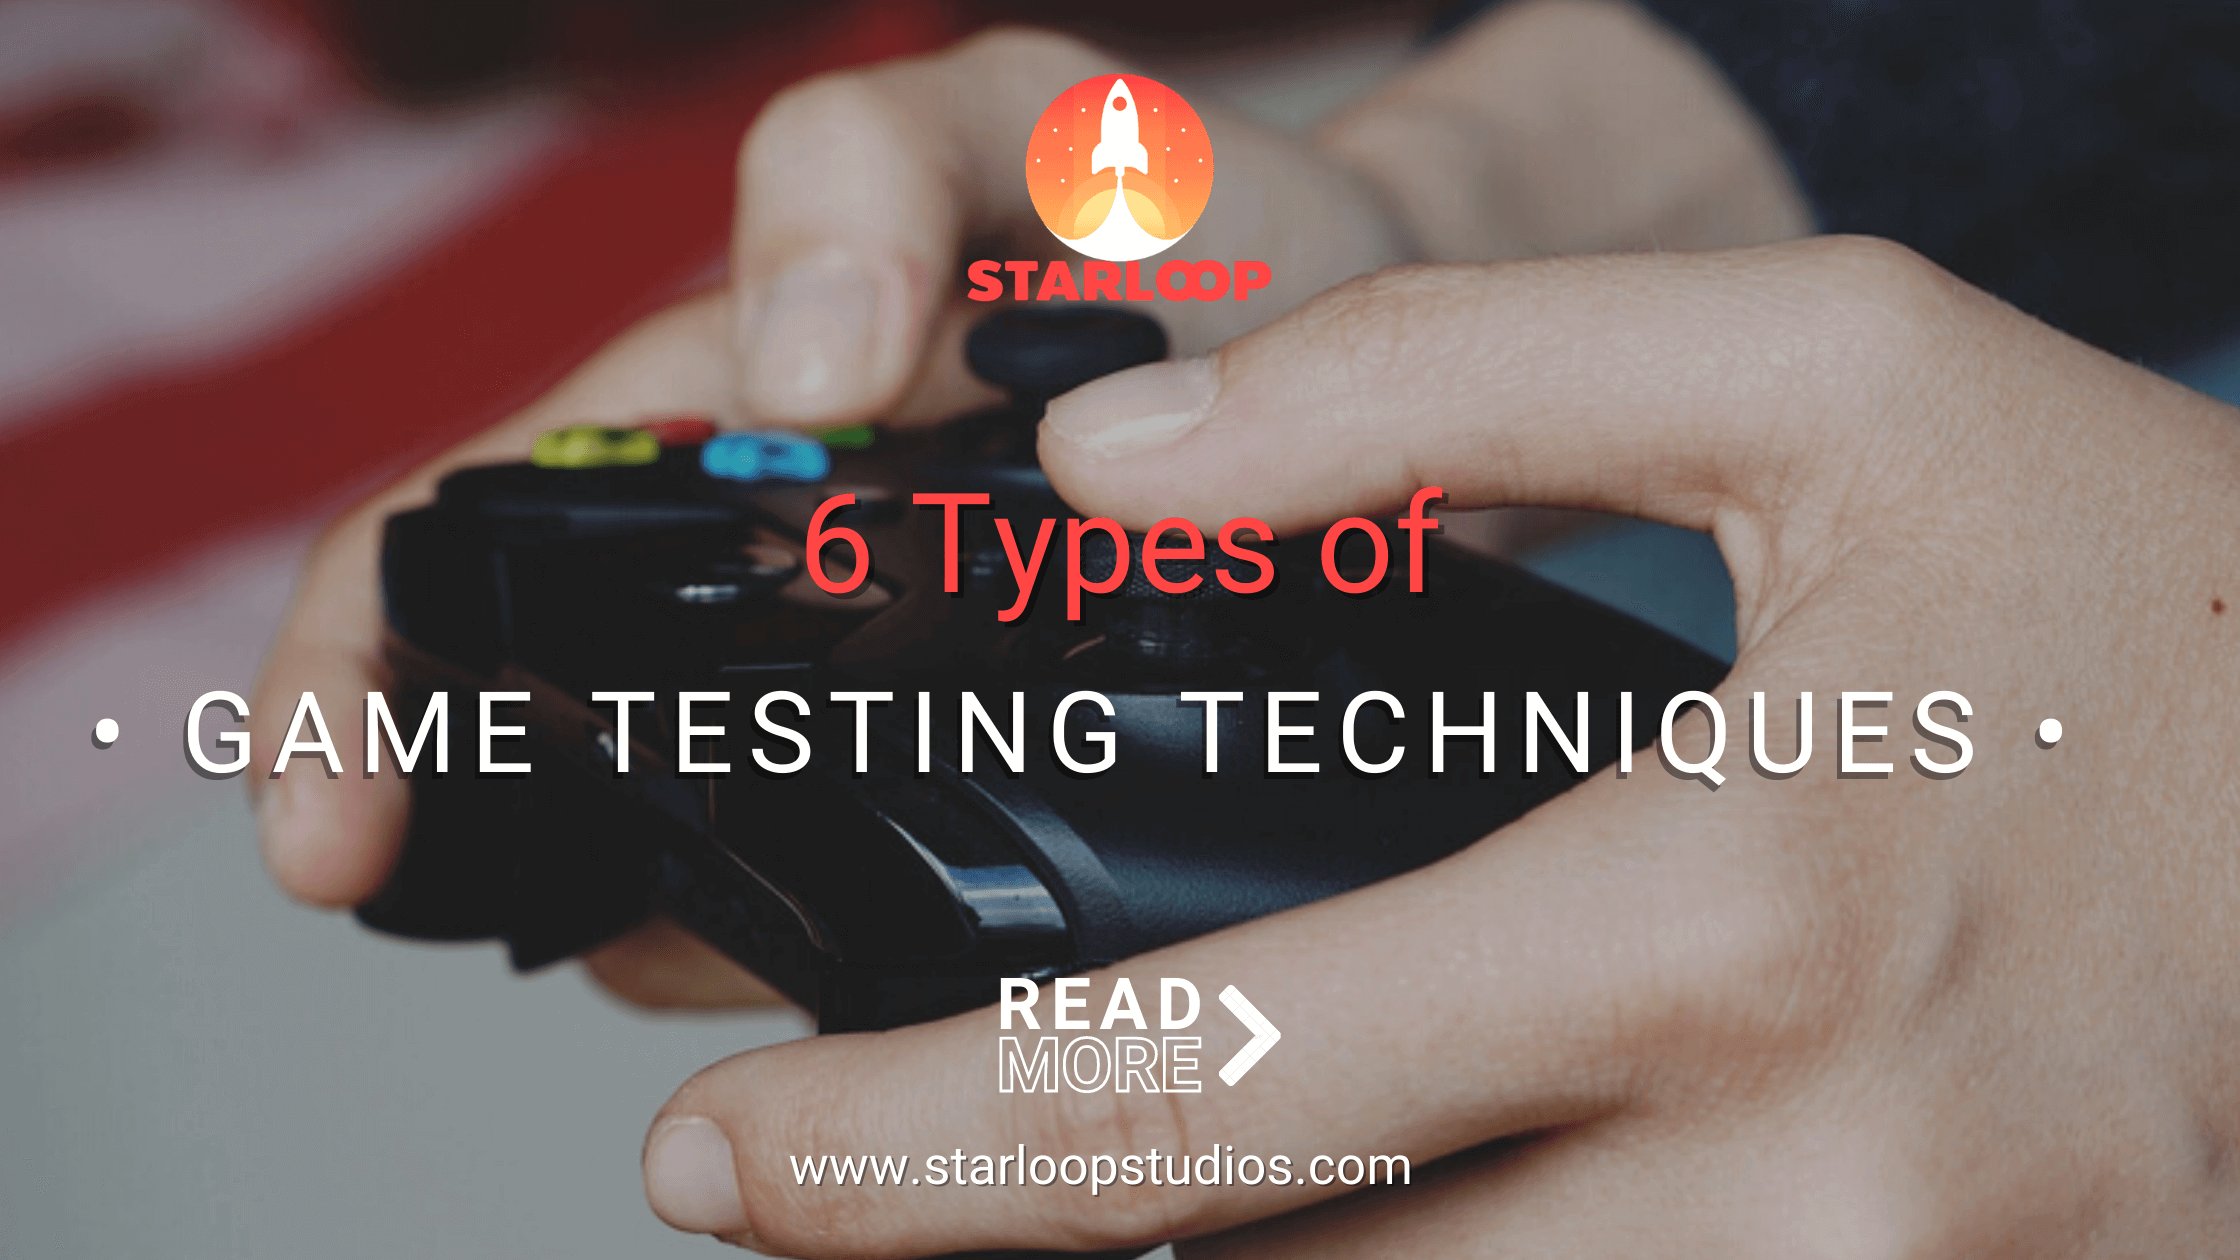 Types of game testing techniques